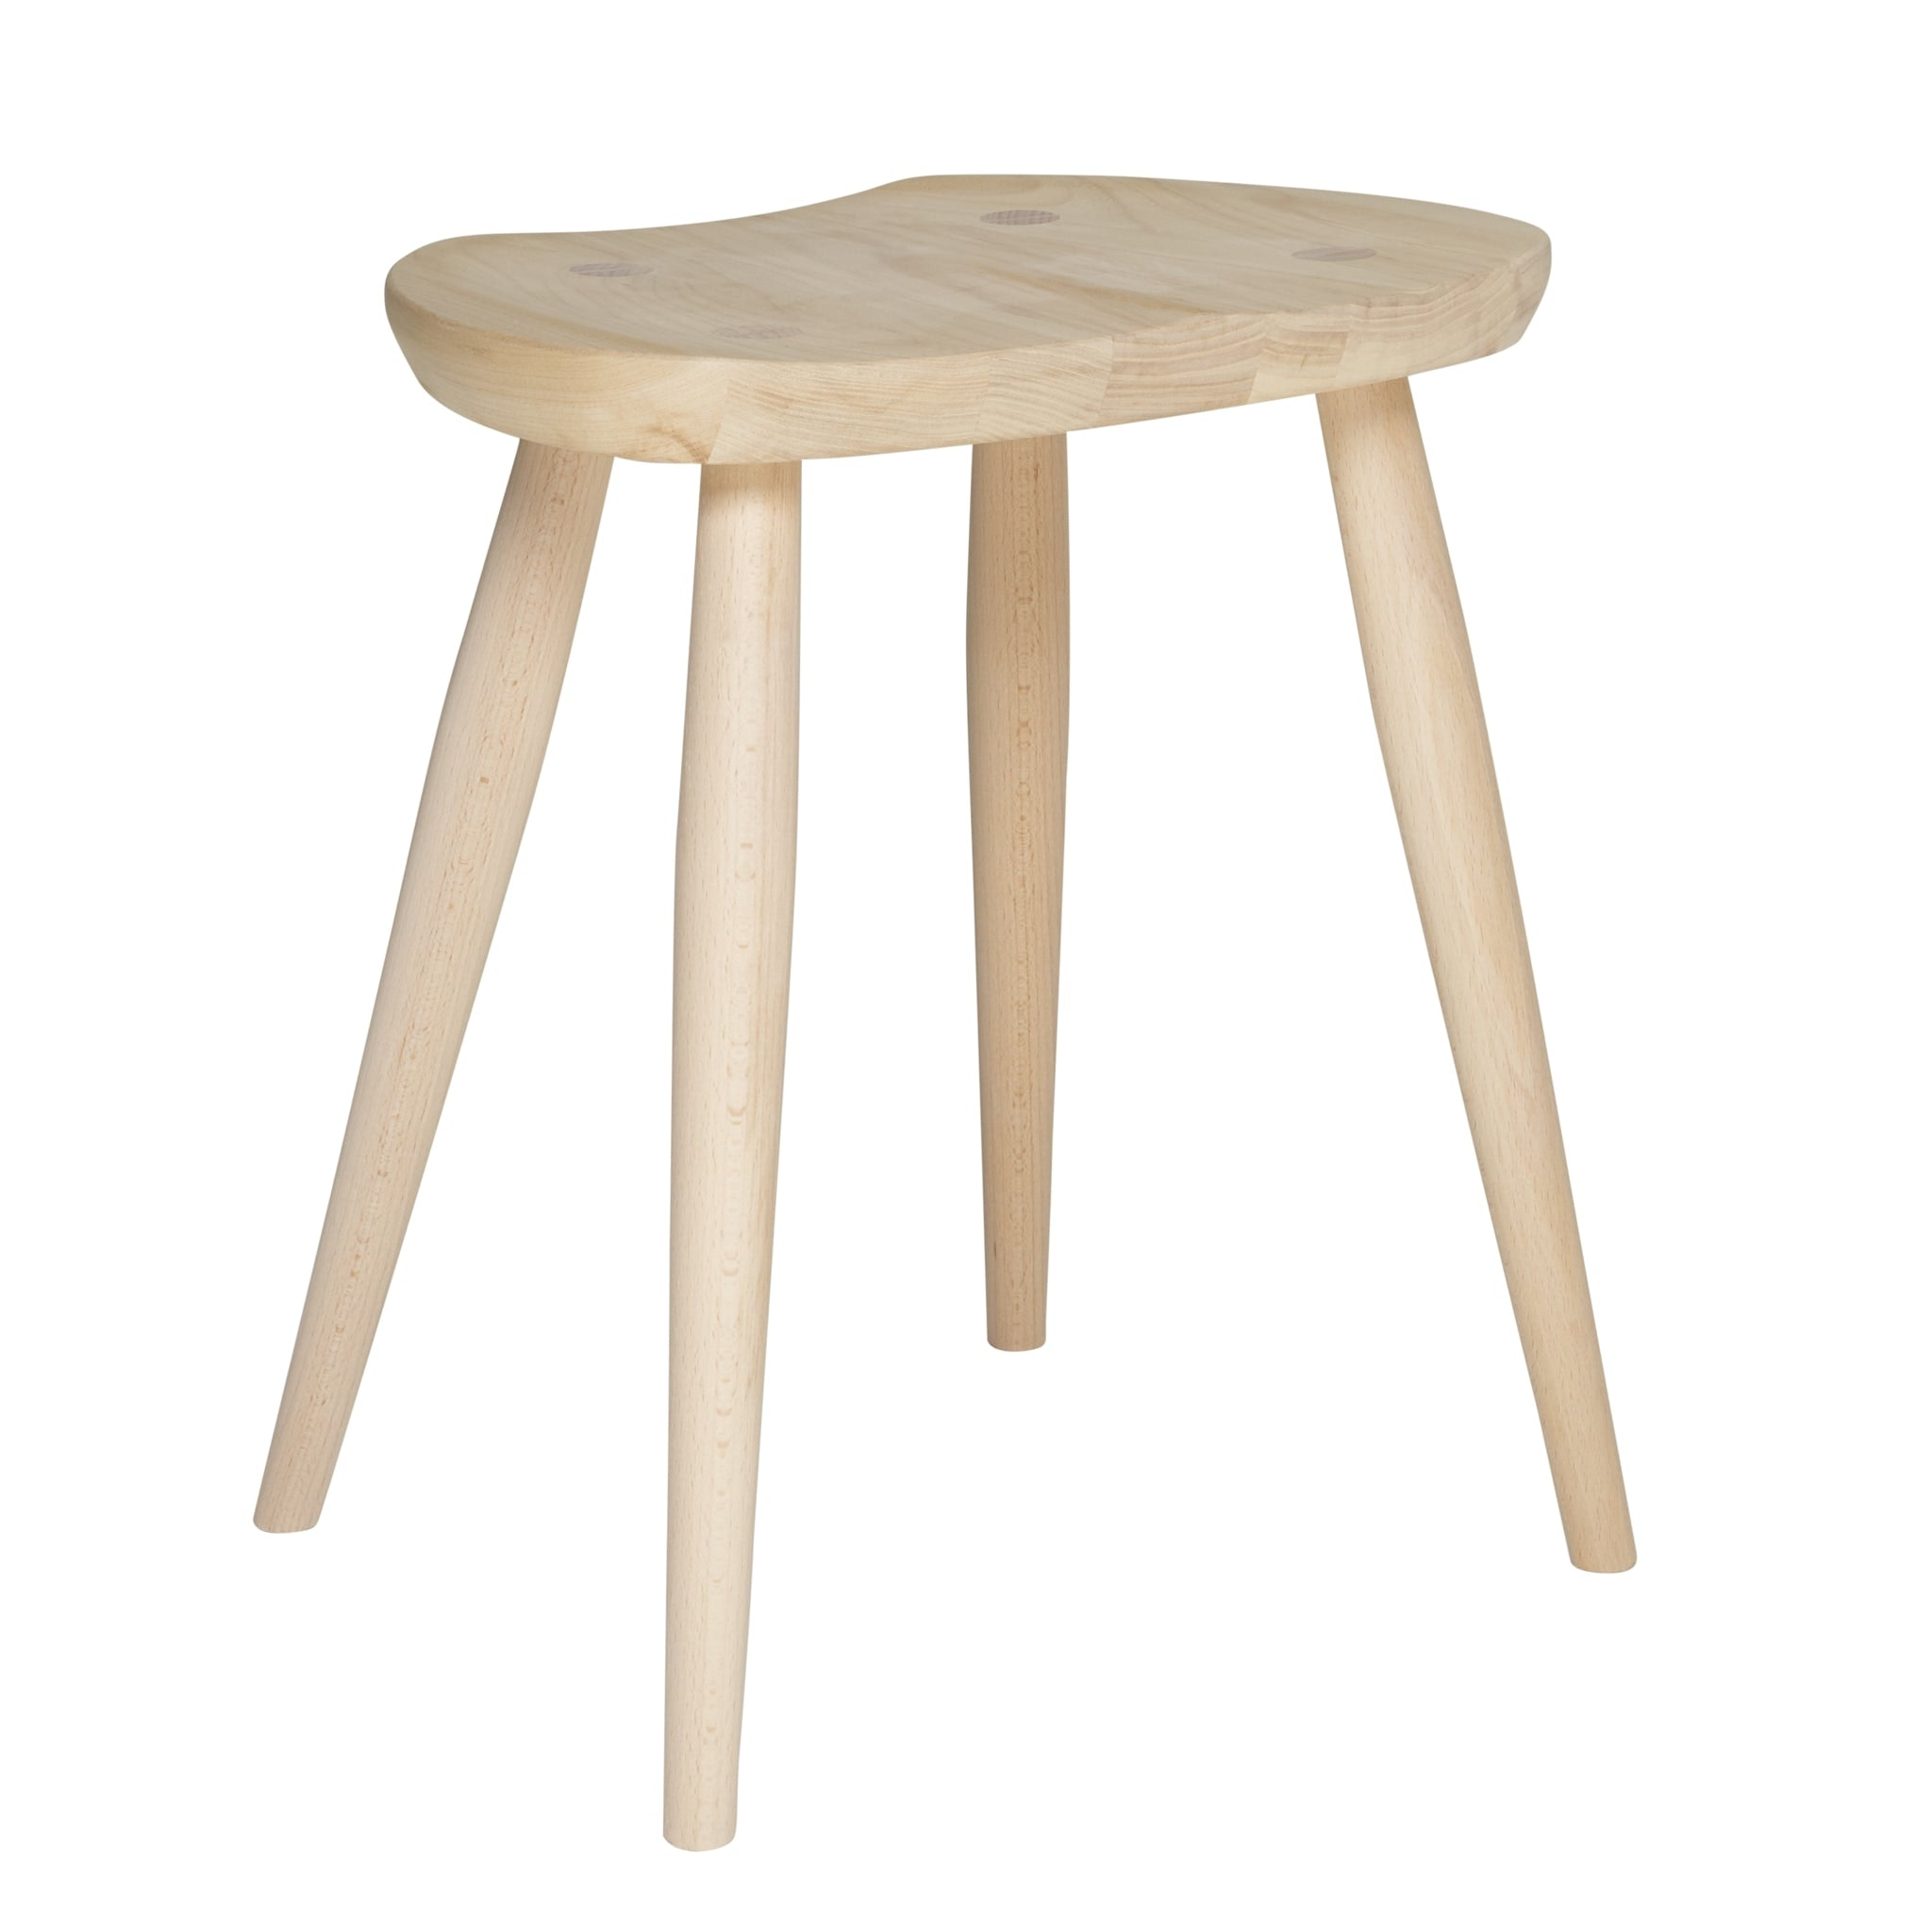 Originals Saddle Stool by Ercol